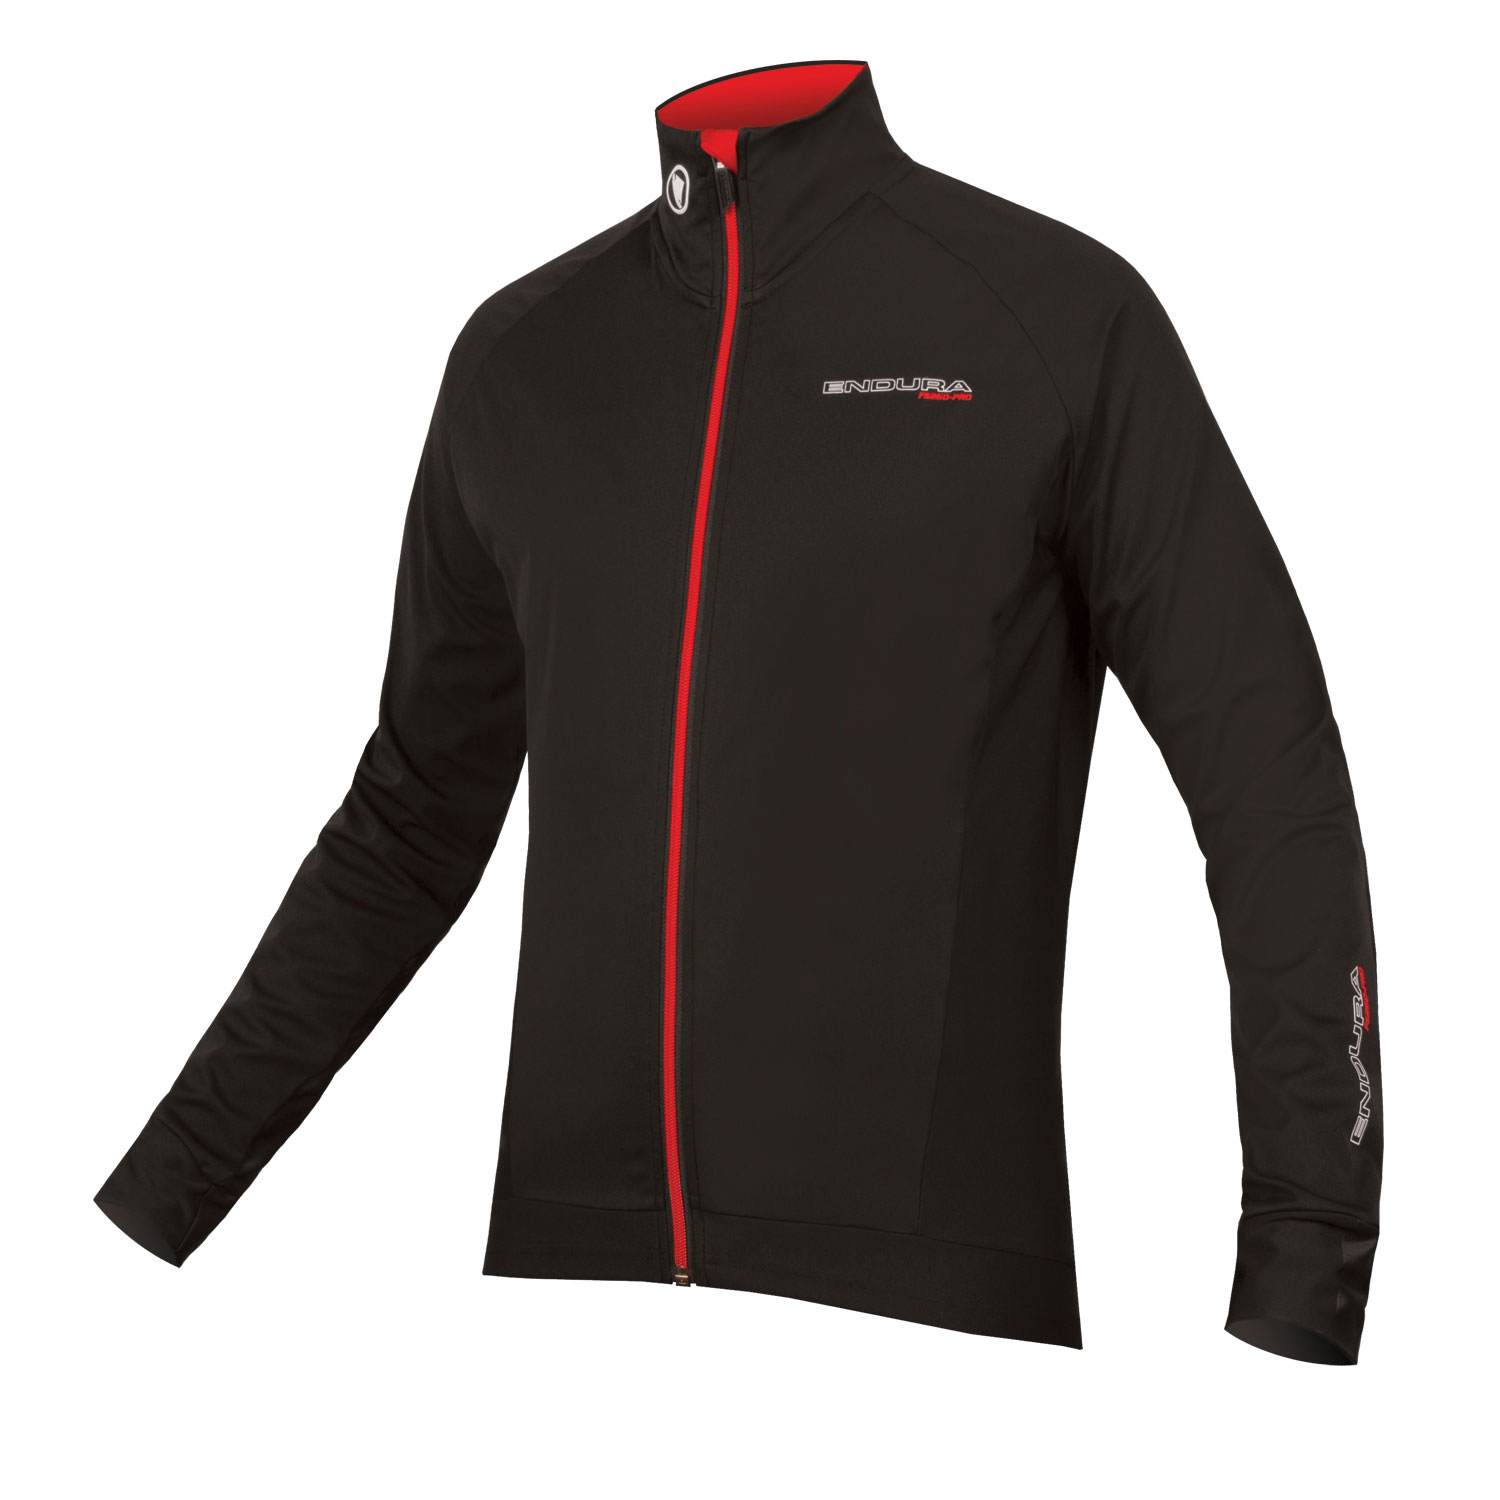 FS260-Pro Jetstream L/S Jersey Black